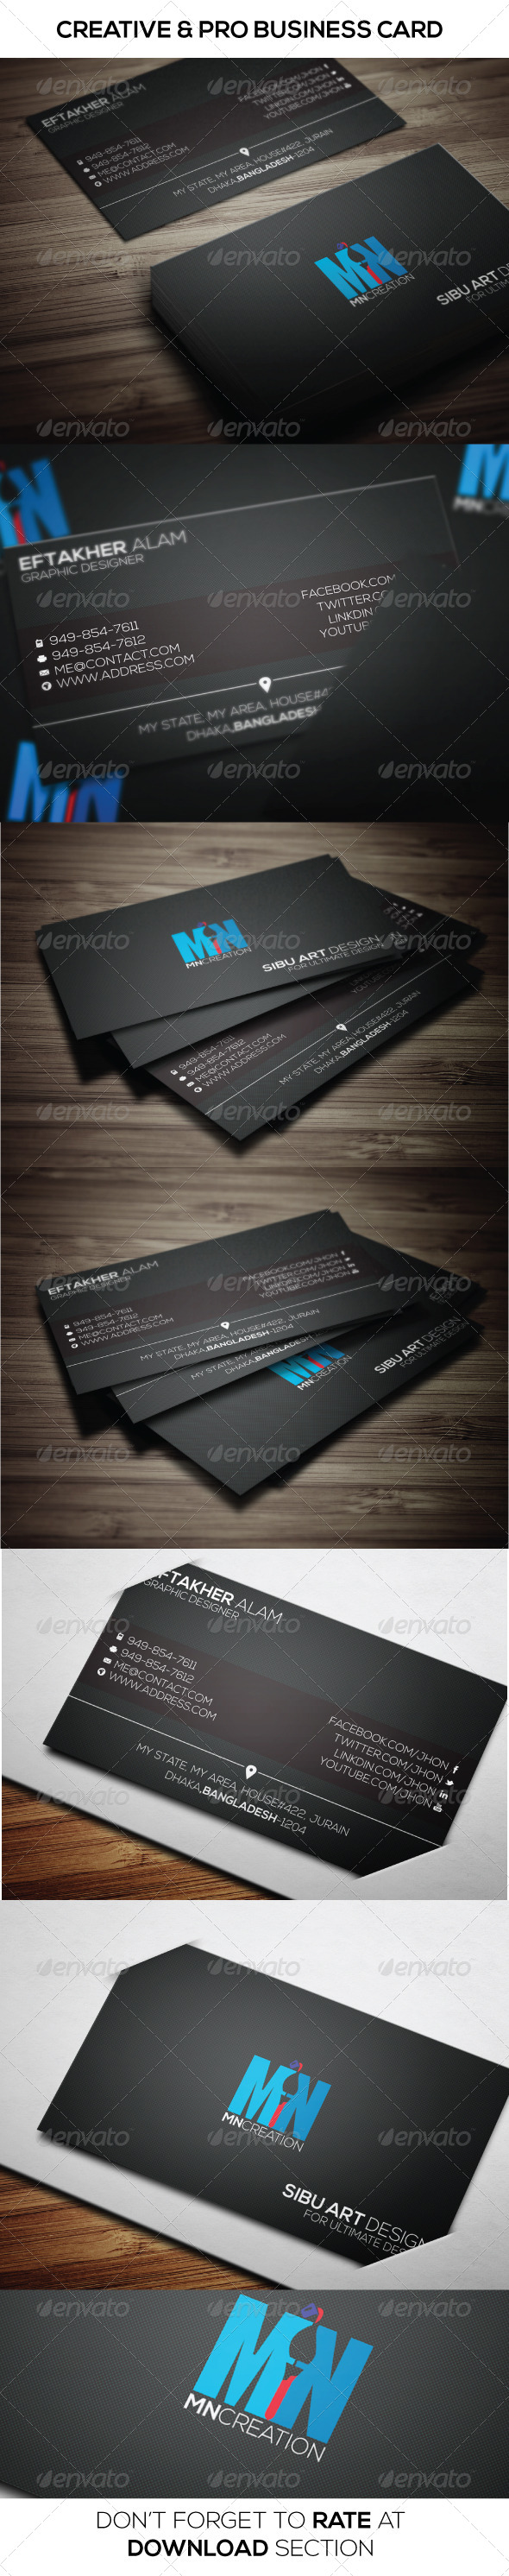 GraphicRiver Creative Pro Business Card 6797156